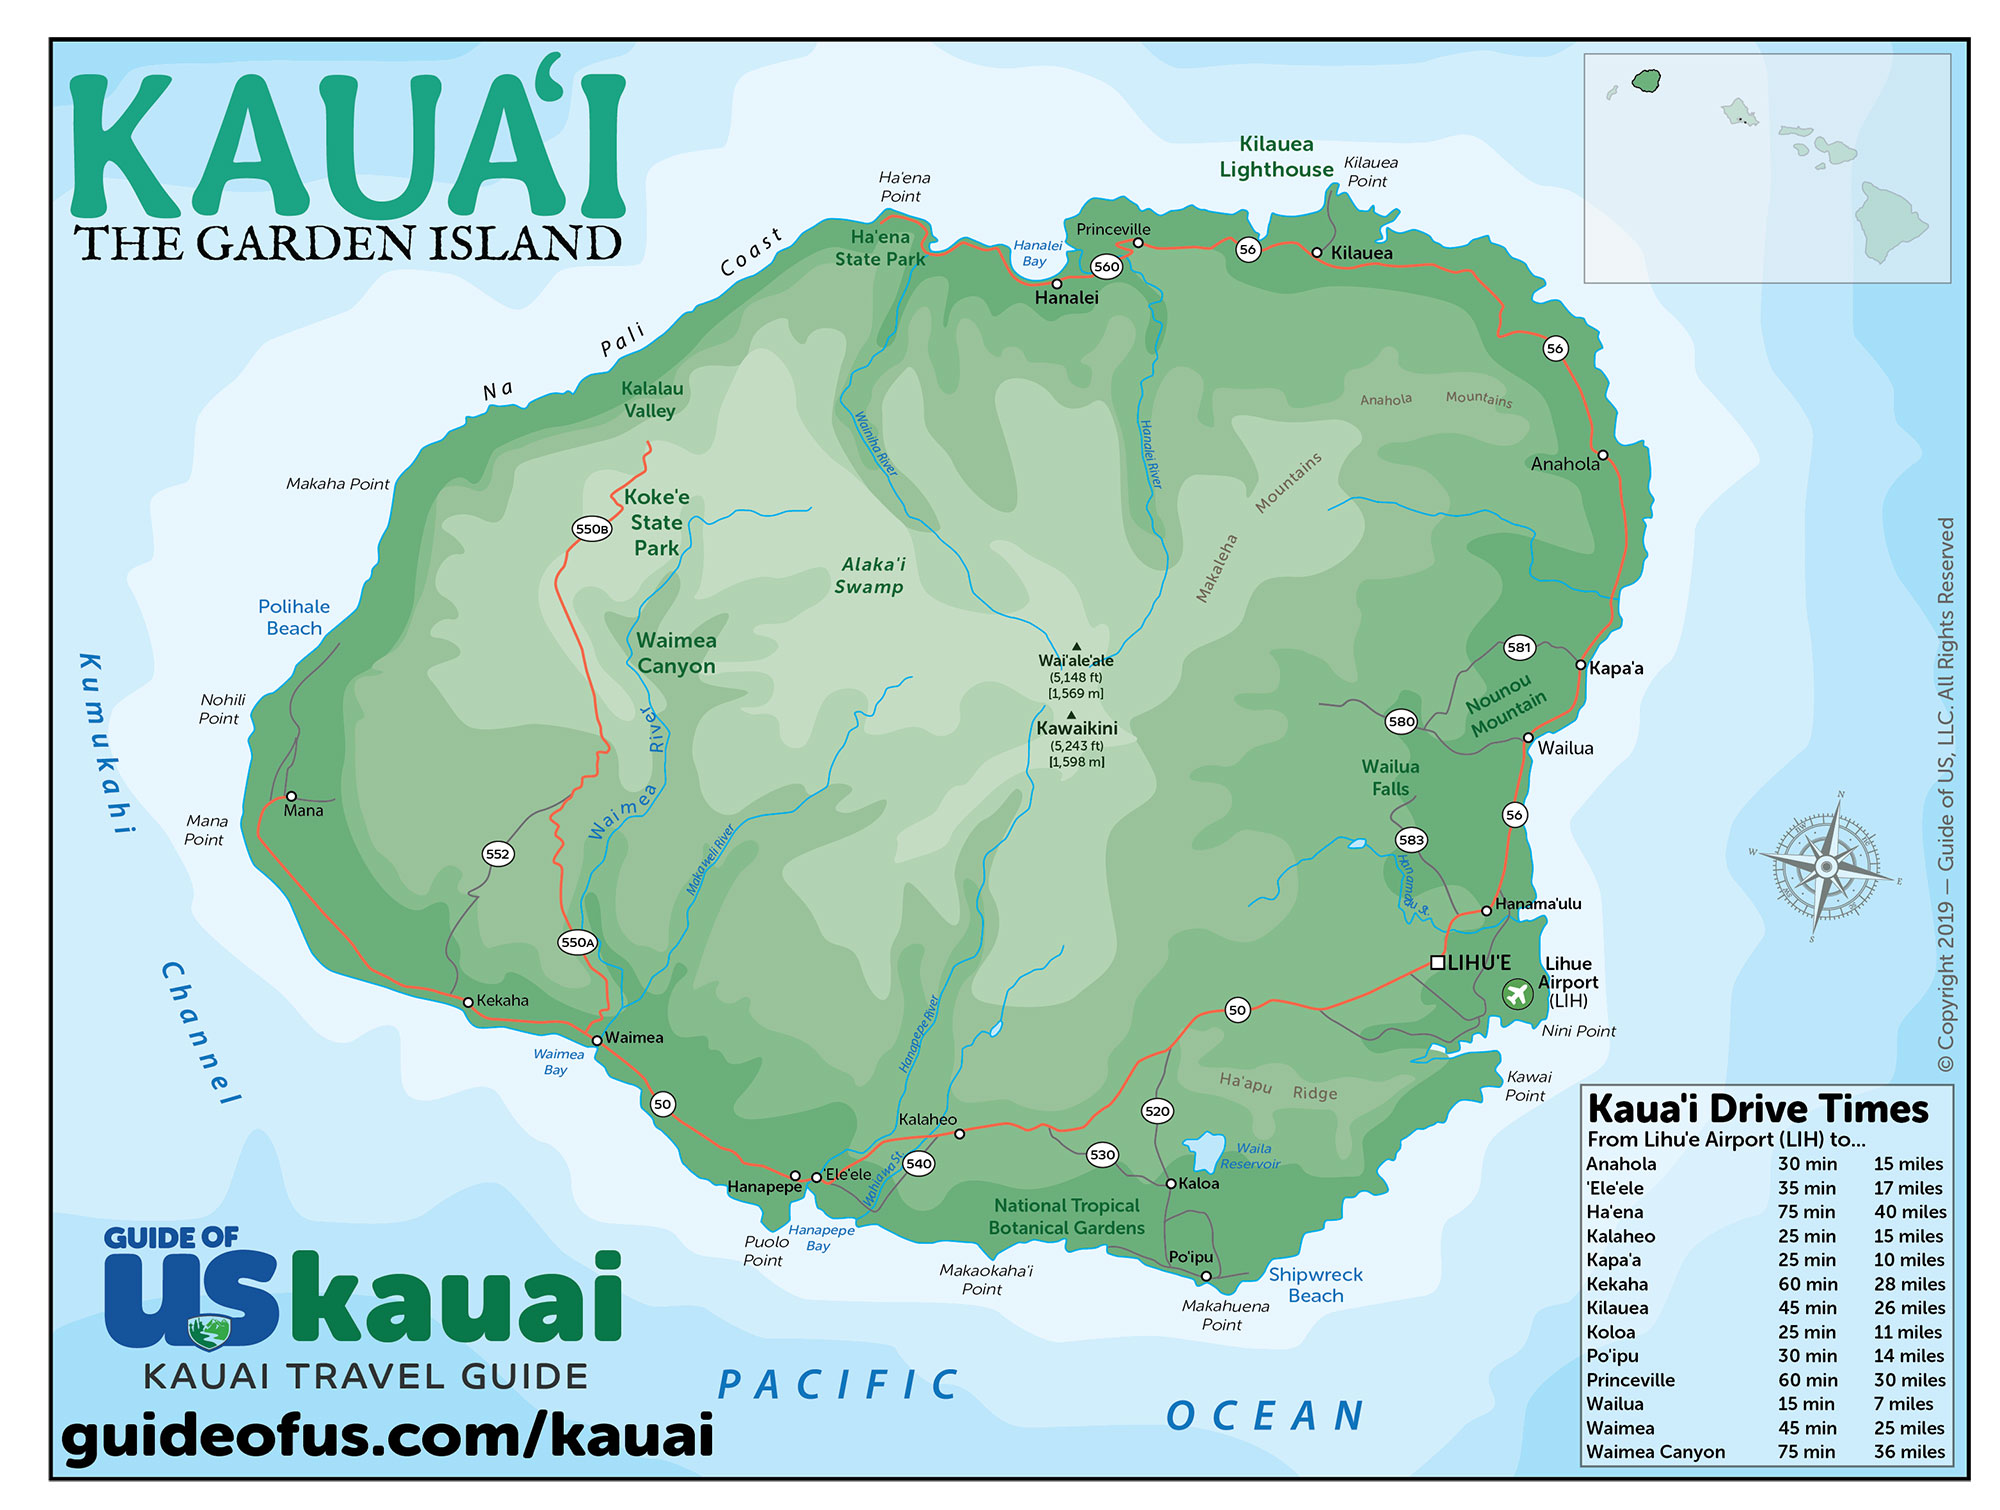 Kauai Maps on map of glasgow, map of johannesburg, map of cedar rapids, map of miami, map of madrid, map of lansing, map of norfolk, map of new york, map of salt lake city, map of kona, map of lanai city, map of porto, map of florence, map of kahului, map of ontario, map of hilo, map of honolulu, map of singapore, map of hawaiian islands, map of cancun,